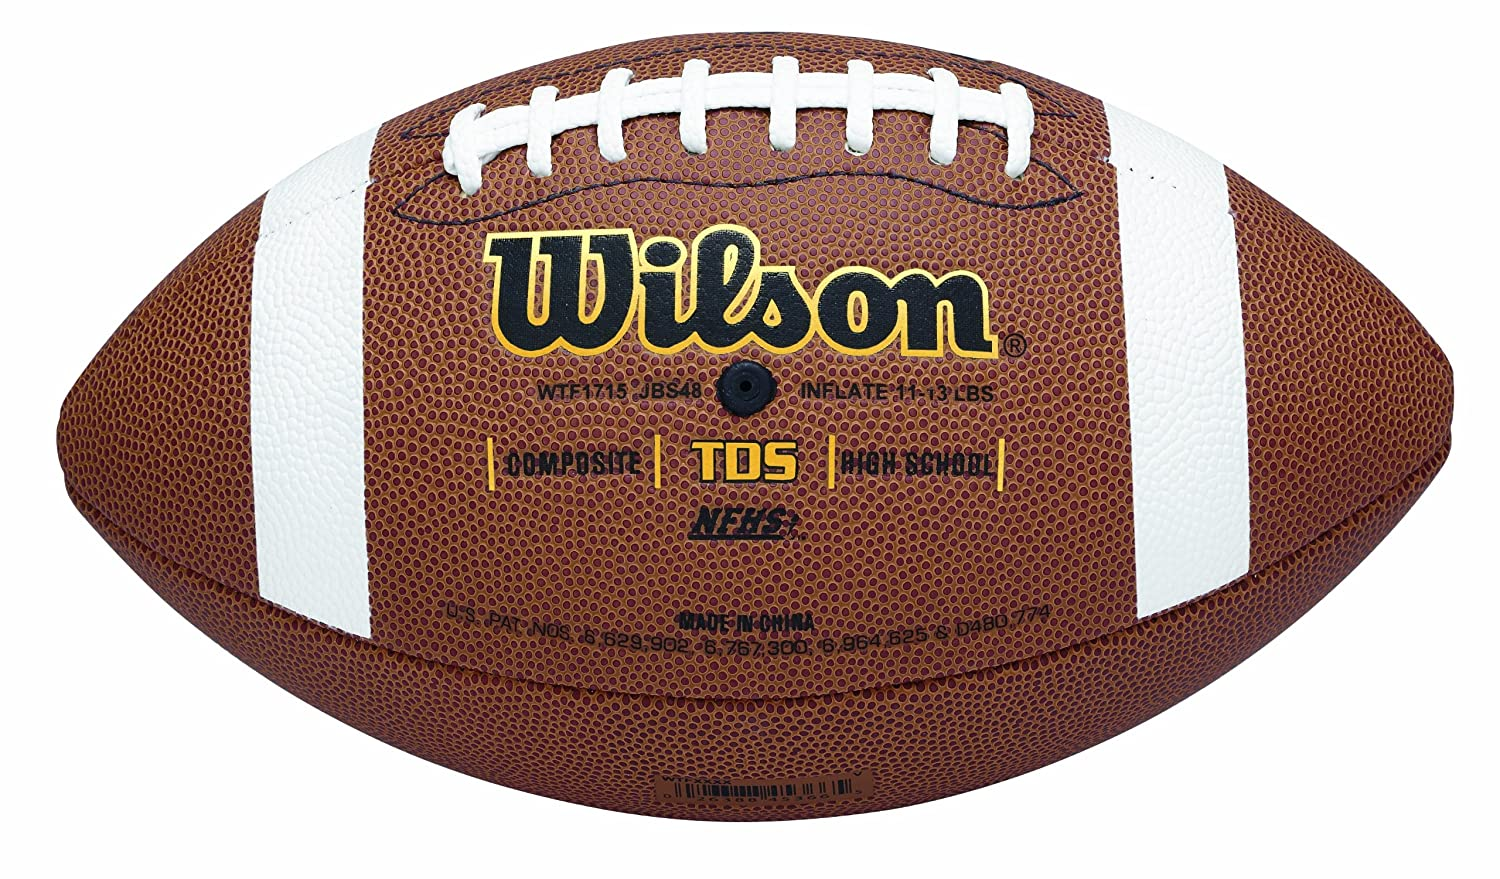 Wilson TDS Composite High School Game Ball Football WTF1715